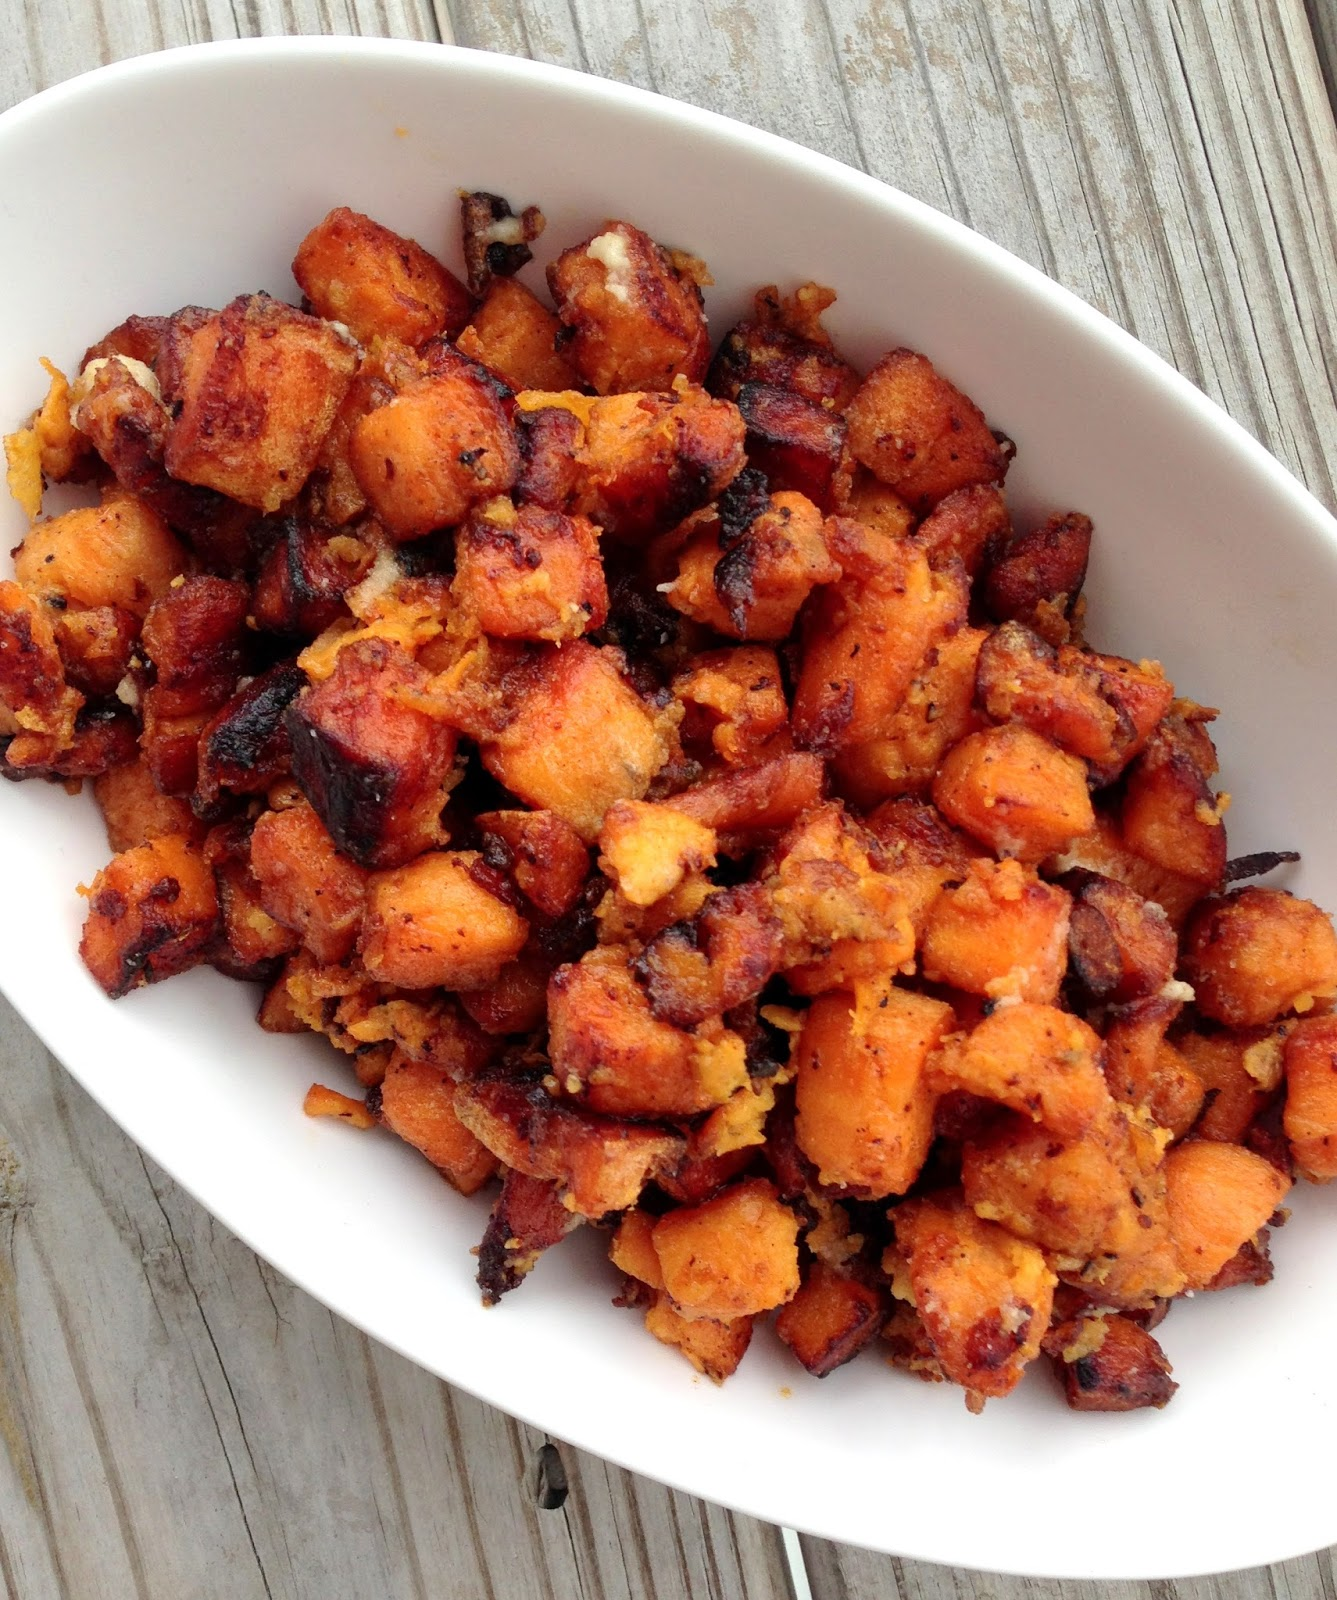 ... hash brown s brown butter mashed potatoes potato hash browns 6 hash